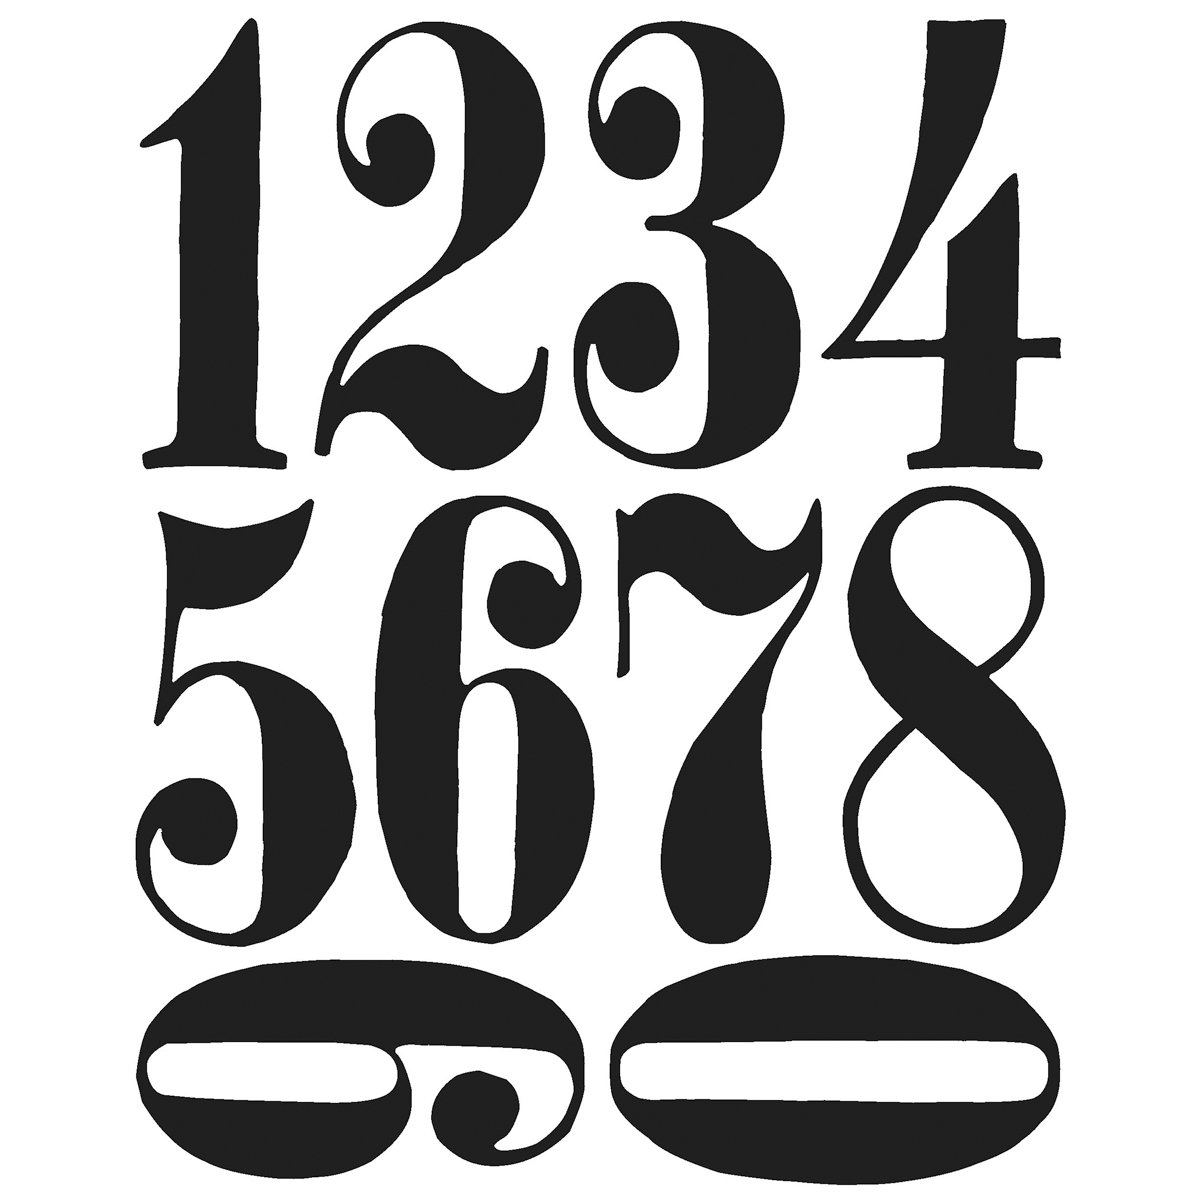 Stampers Anonymous Tim Holtz Cling Rubber Stamp Set, 7 by 8.5-Inch, Numeric